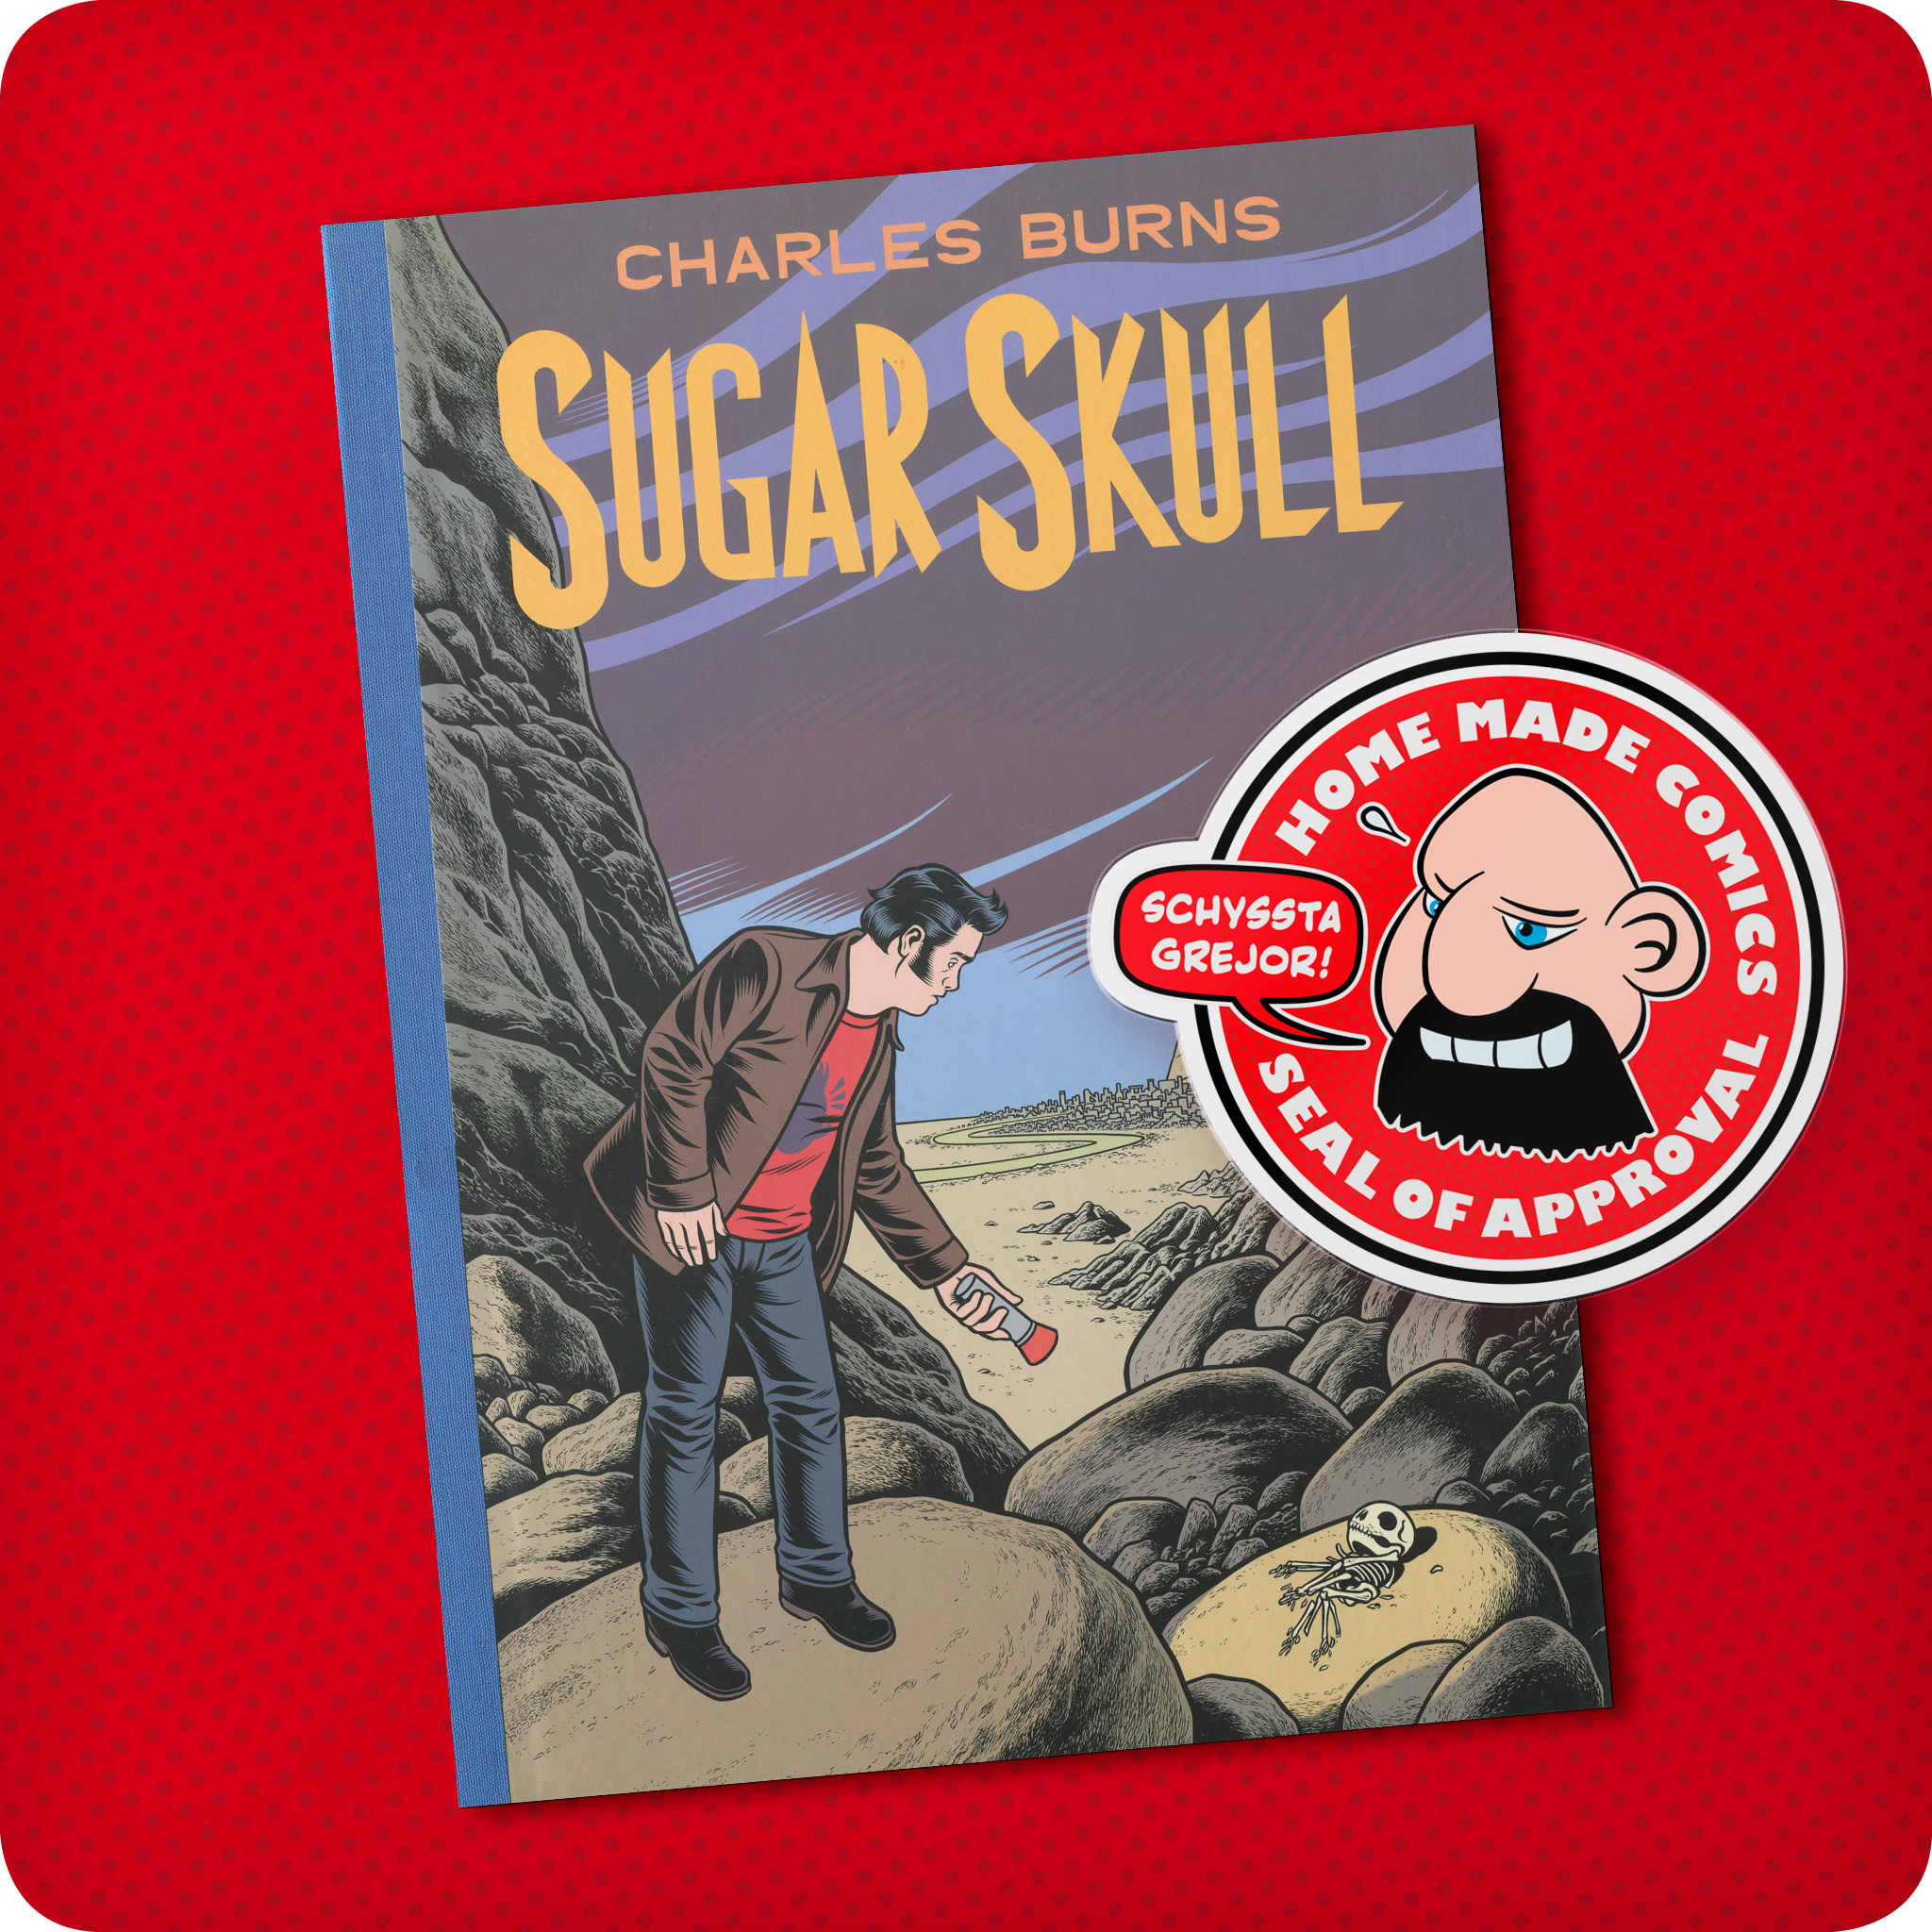 242-Home-Made-Comics-Seal-of-Approval-242-Sugar-Skull-av-Charles-Burns-utgiven-av-Pantheon-2014.png